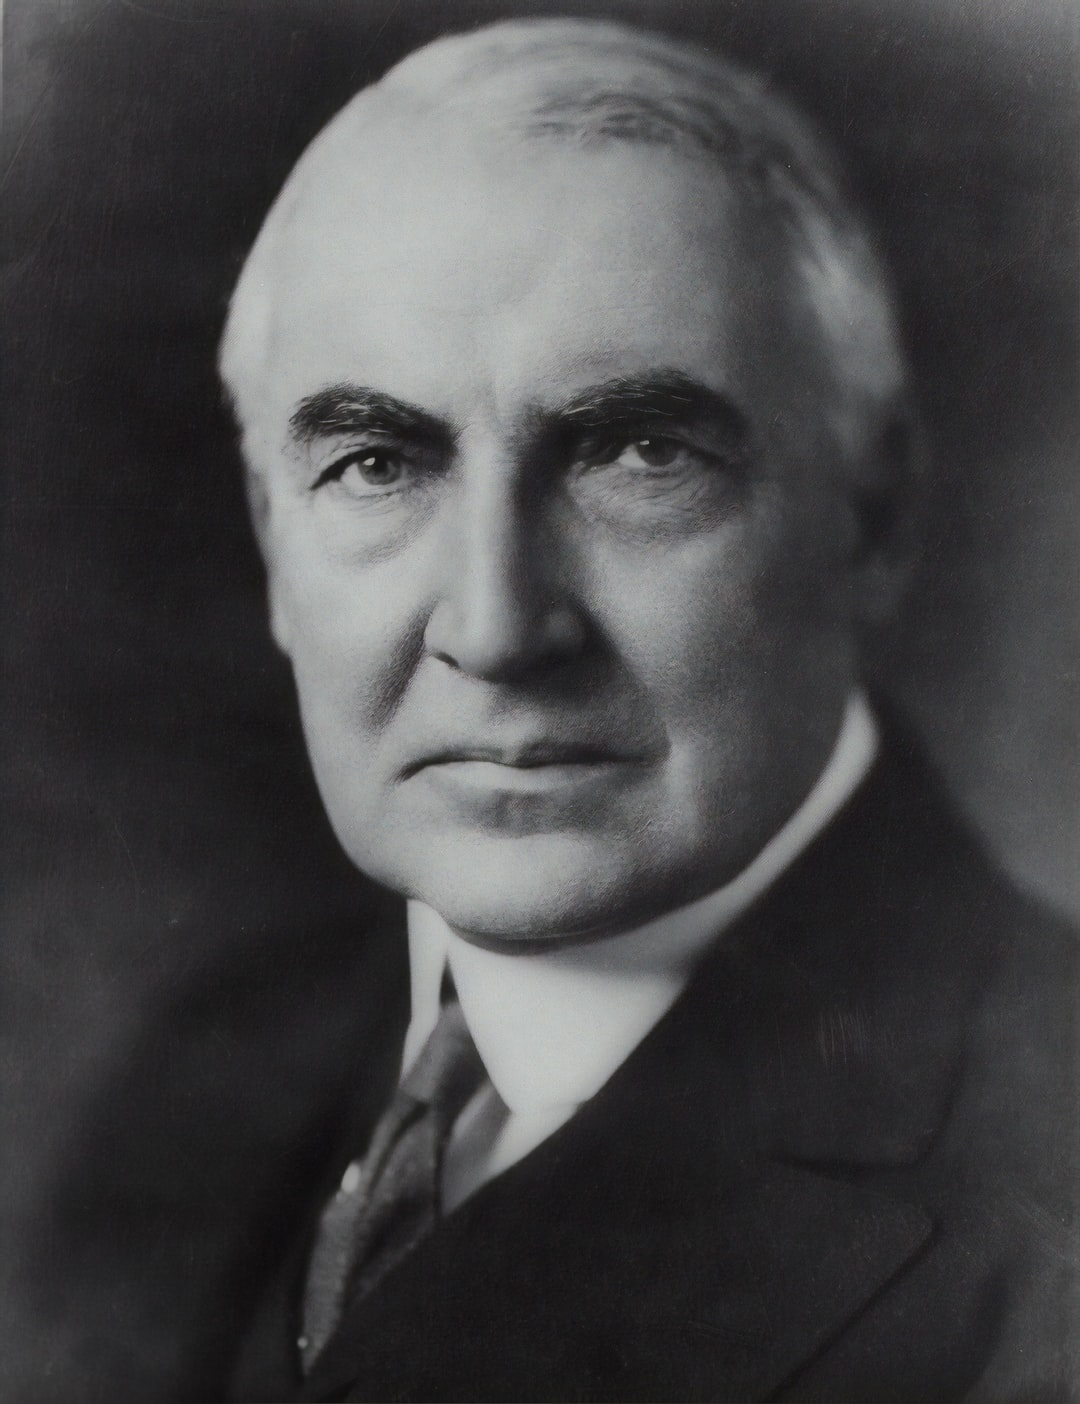 [Senator Warren G. Harding, head-and-shoulders portrait, facing front]. Photograph from the Presidential File Collection, ca. 1920. Library of Congress Prints & Photographs Division.  https://www.loc.gov/item/96522644/